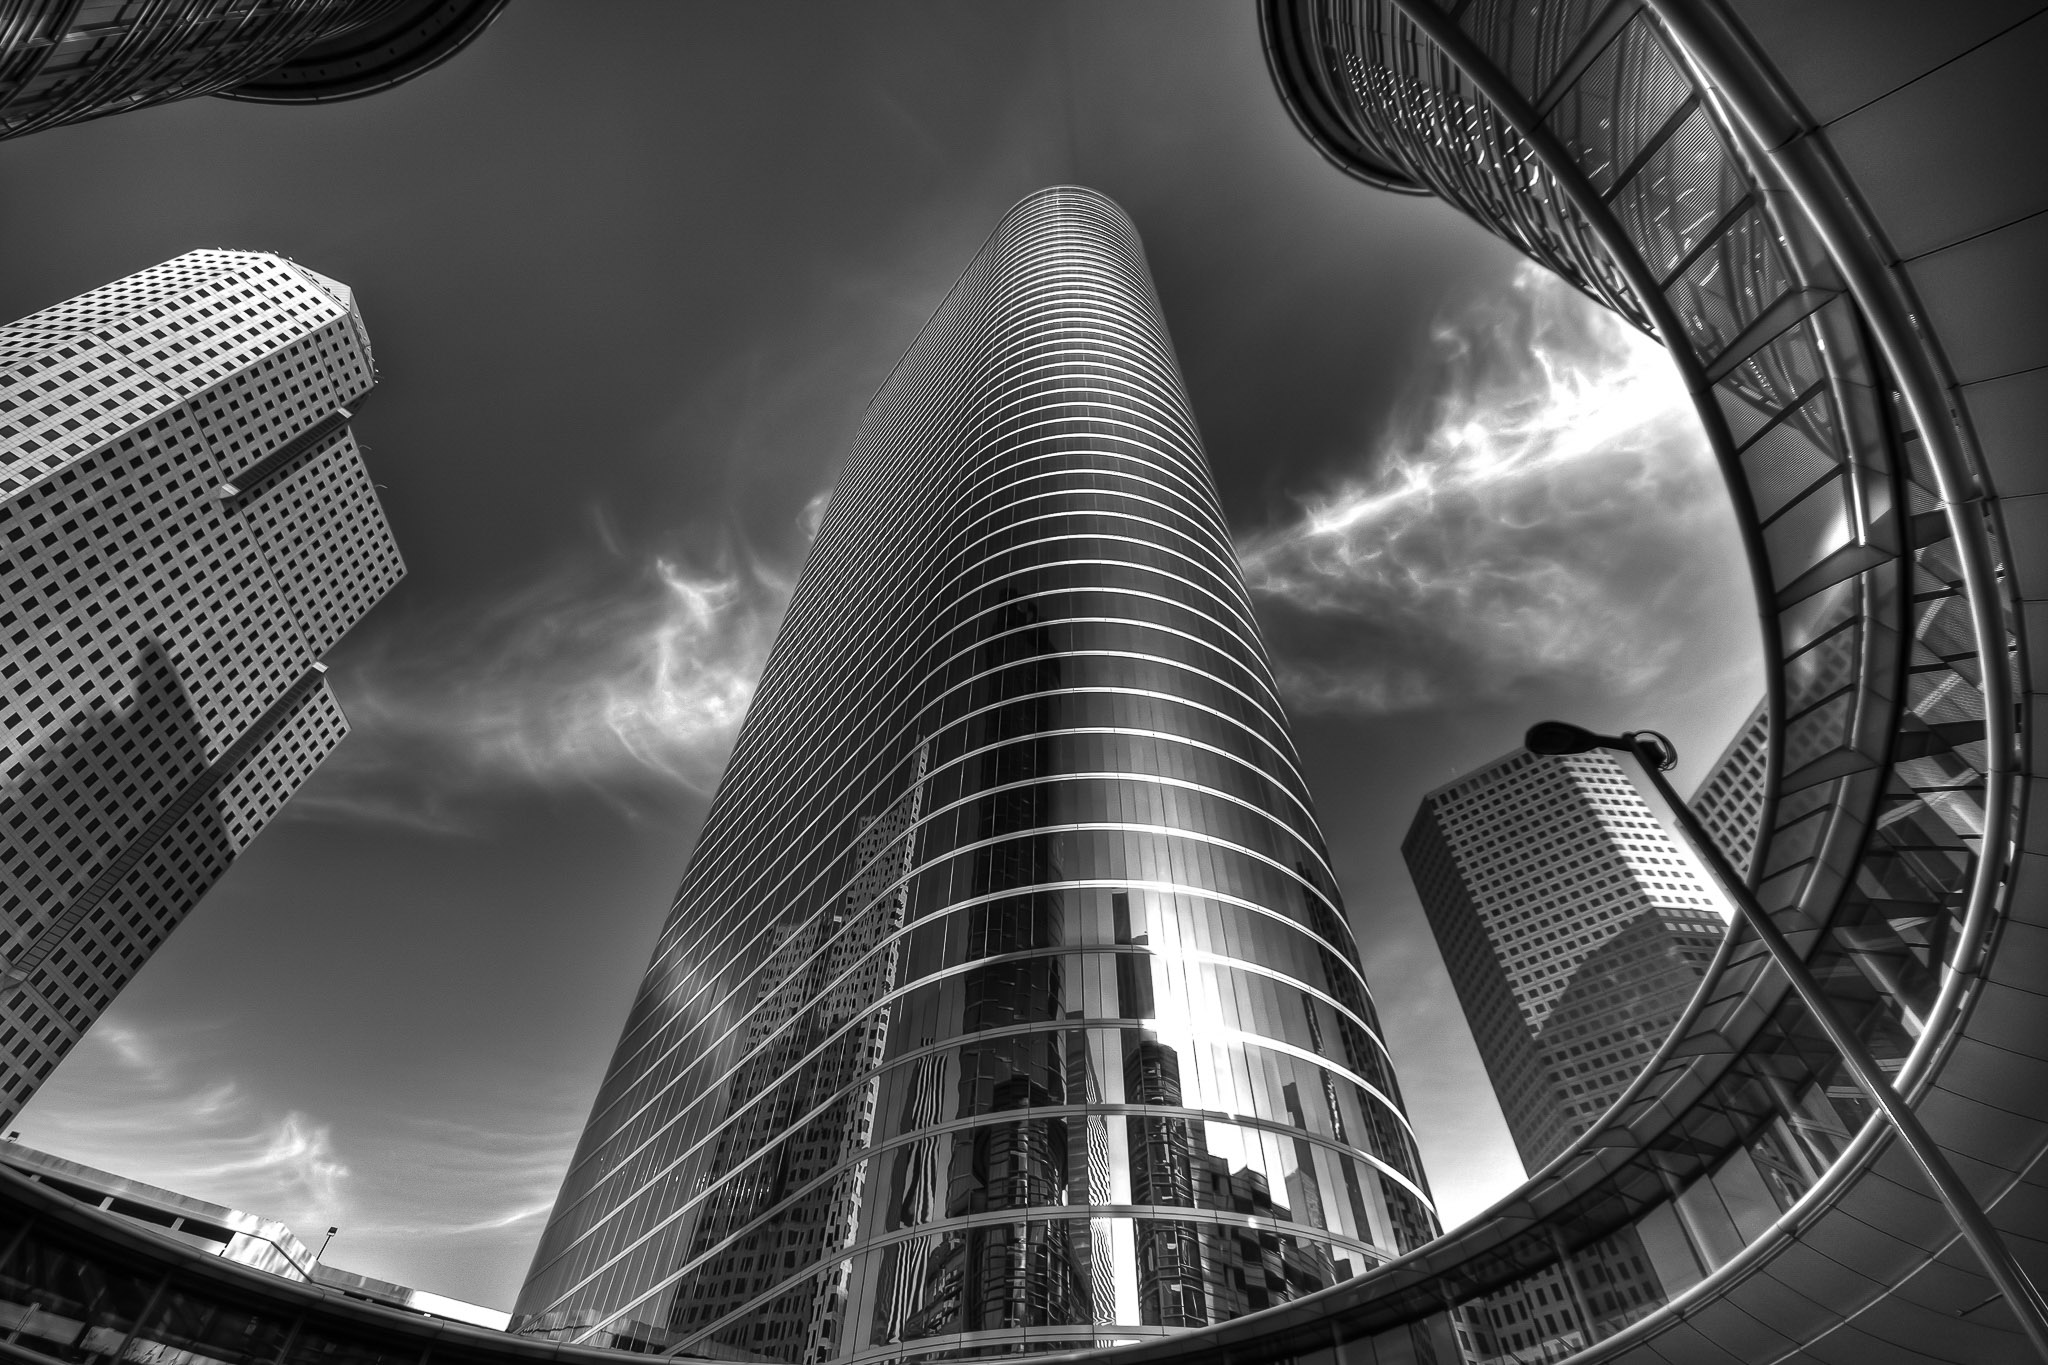 Architectural Photography Tutorial photography tutorials | dave wilson photography